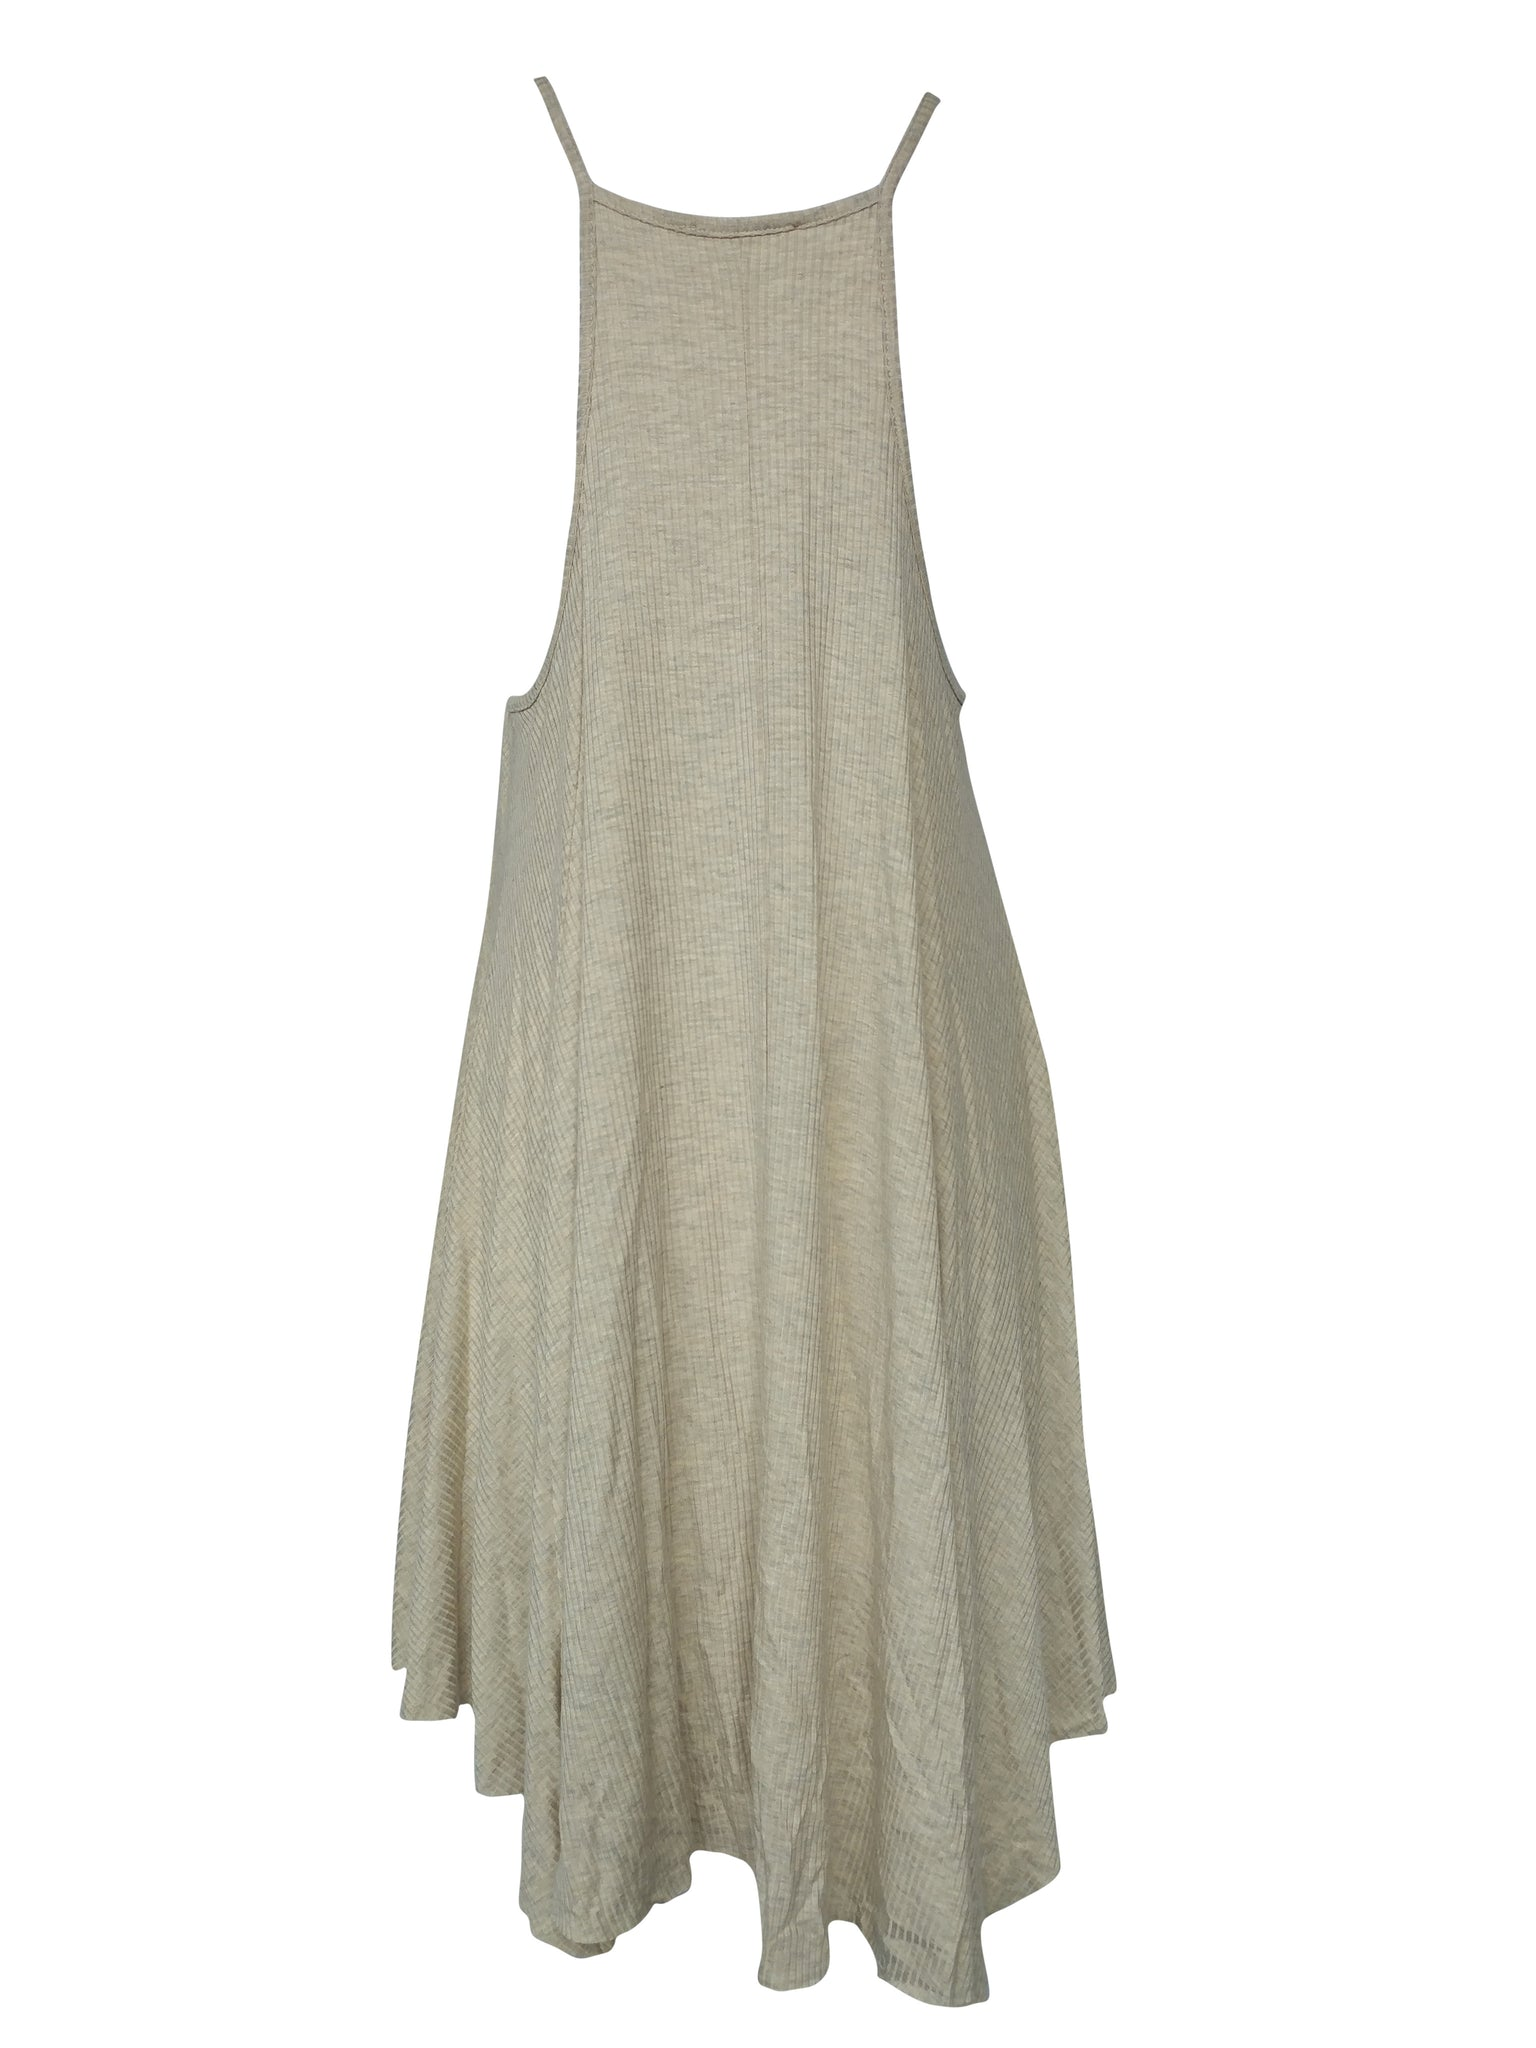 Harper Slip On Dress with Mesh Detail (Tan)